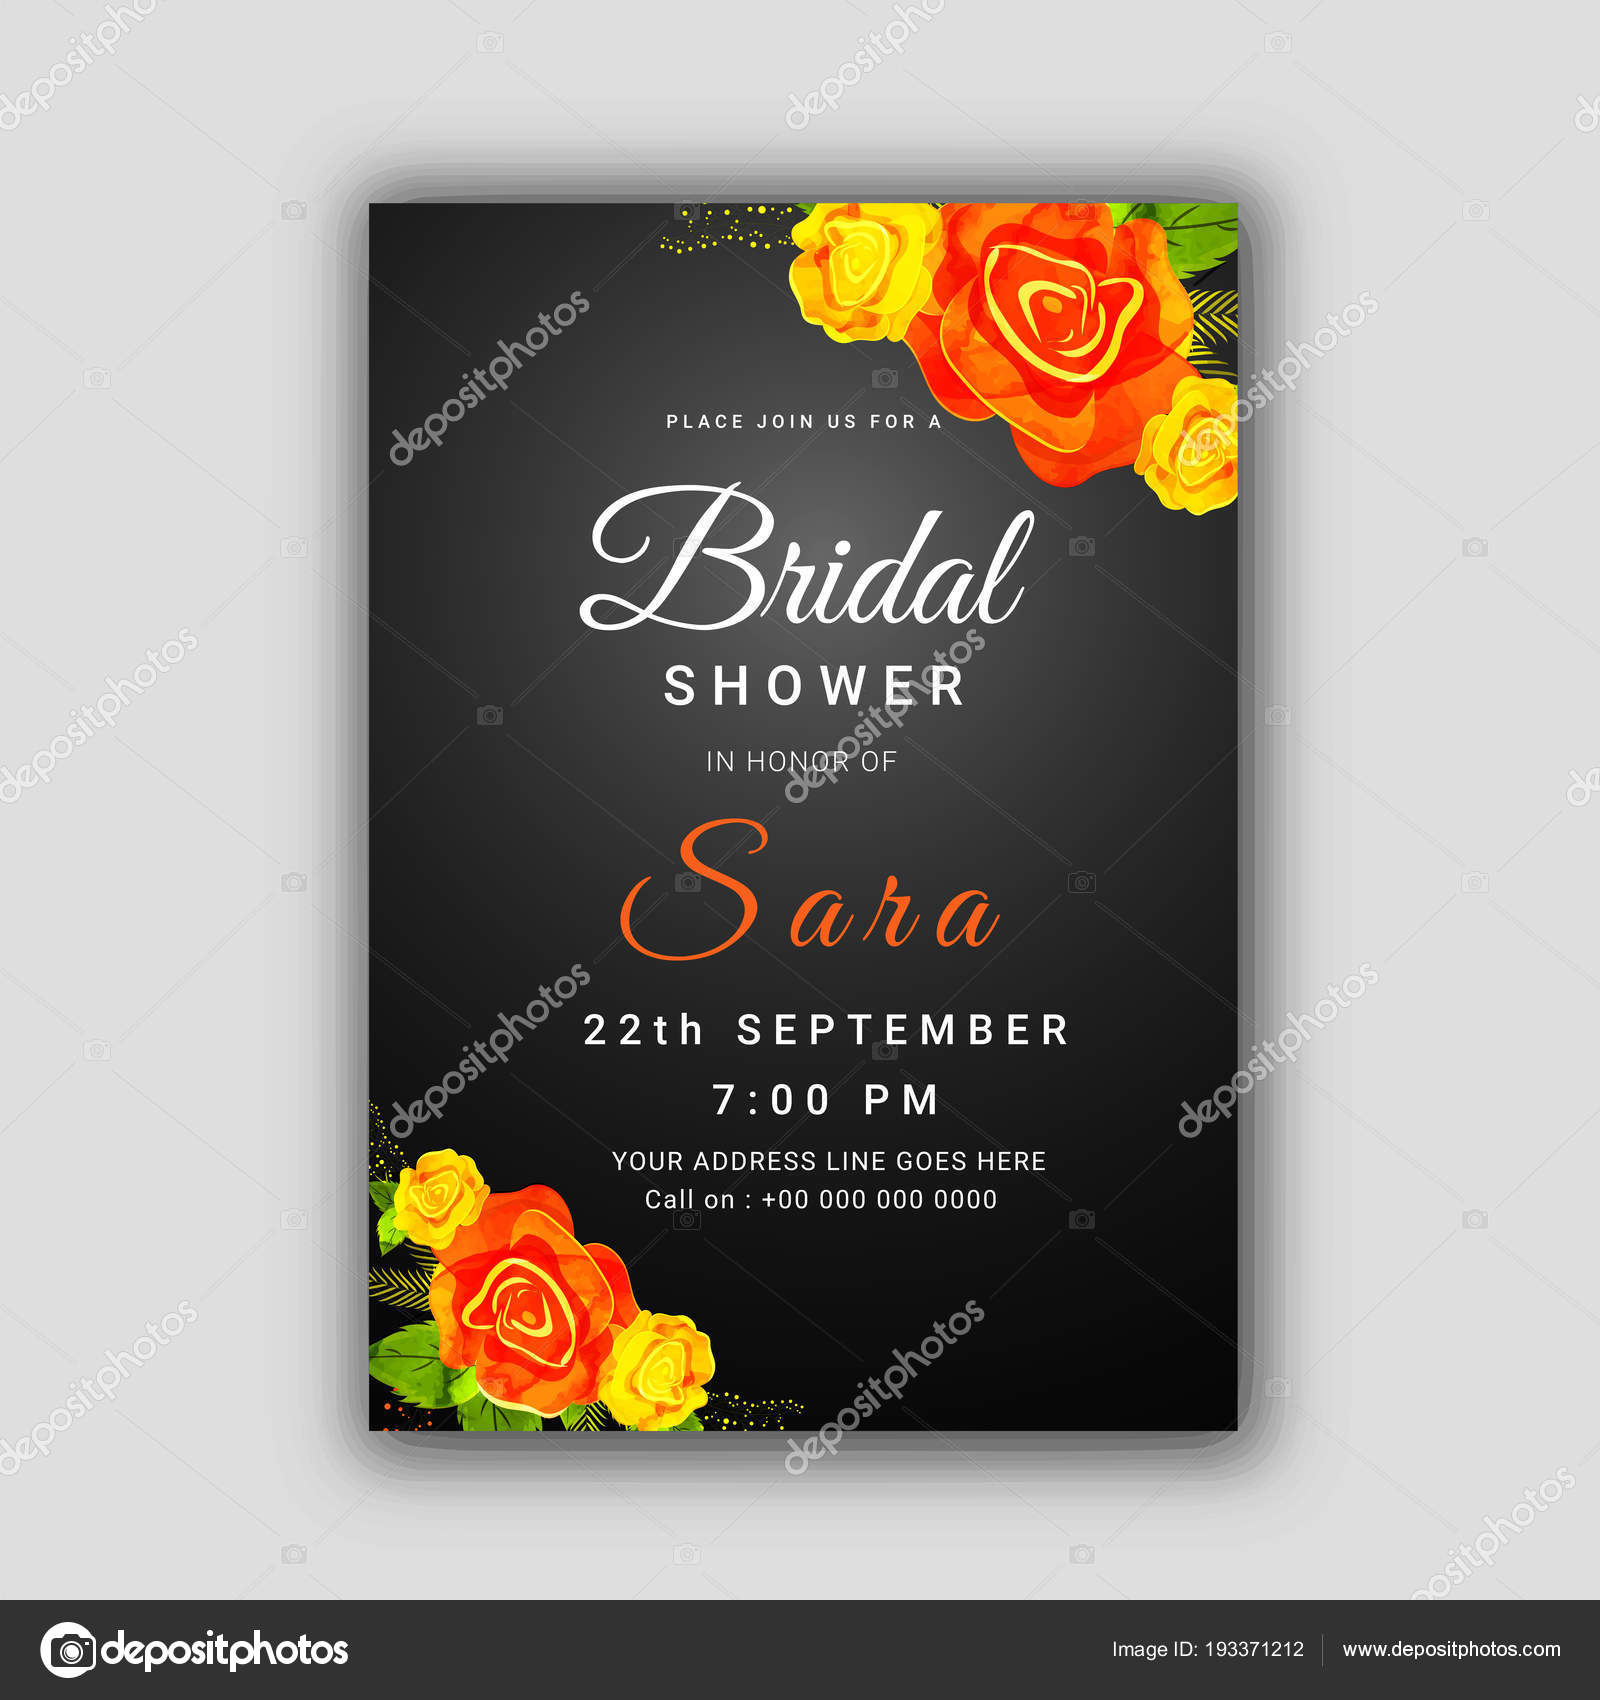 Bridal Shower Invitation Card Template Stock Vector